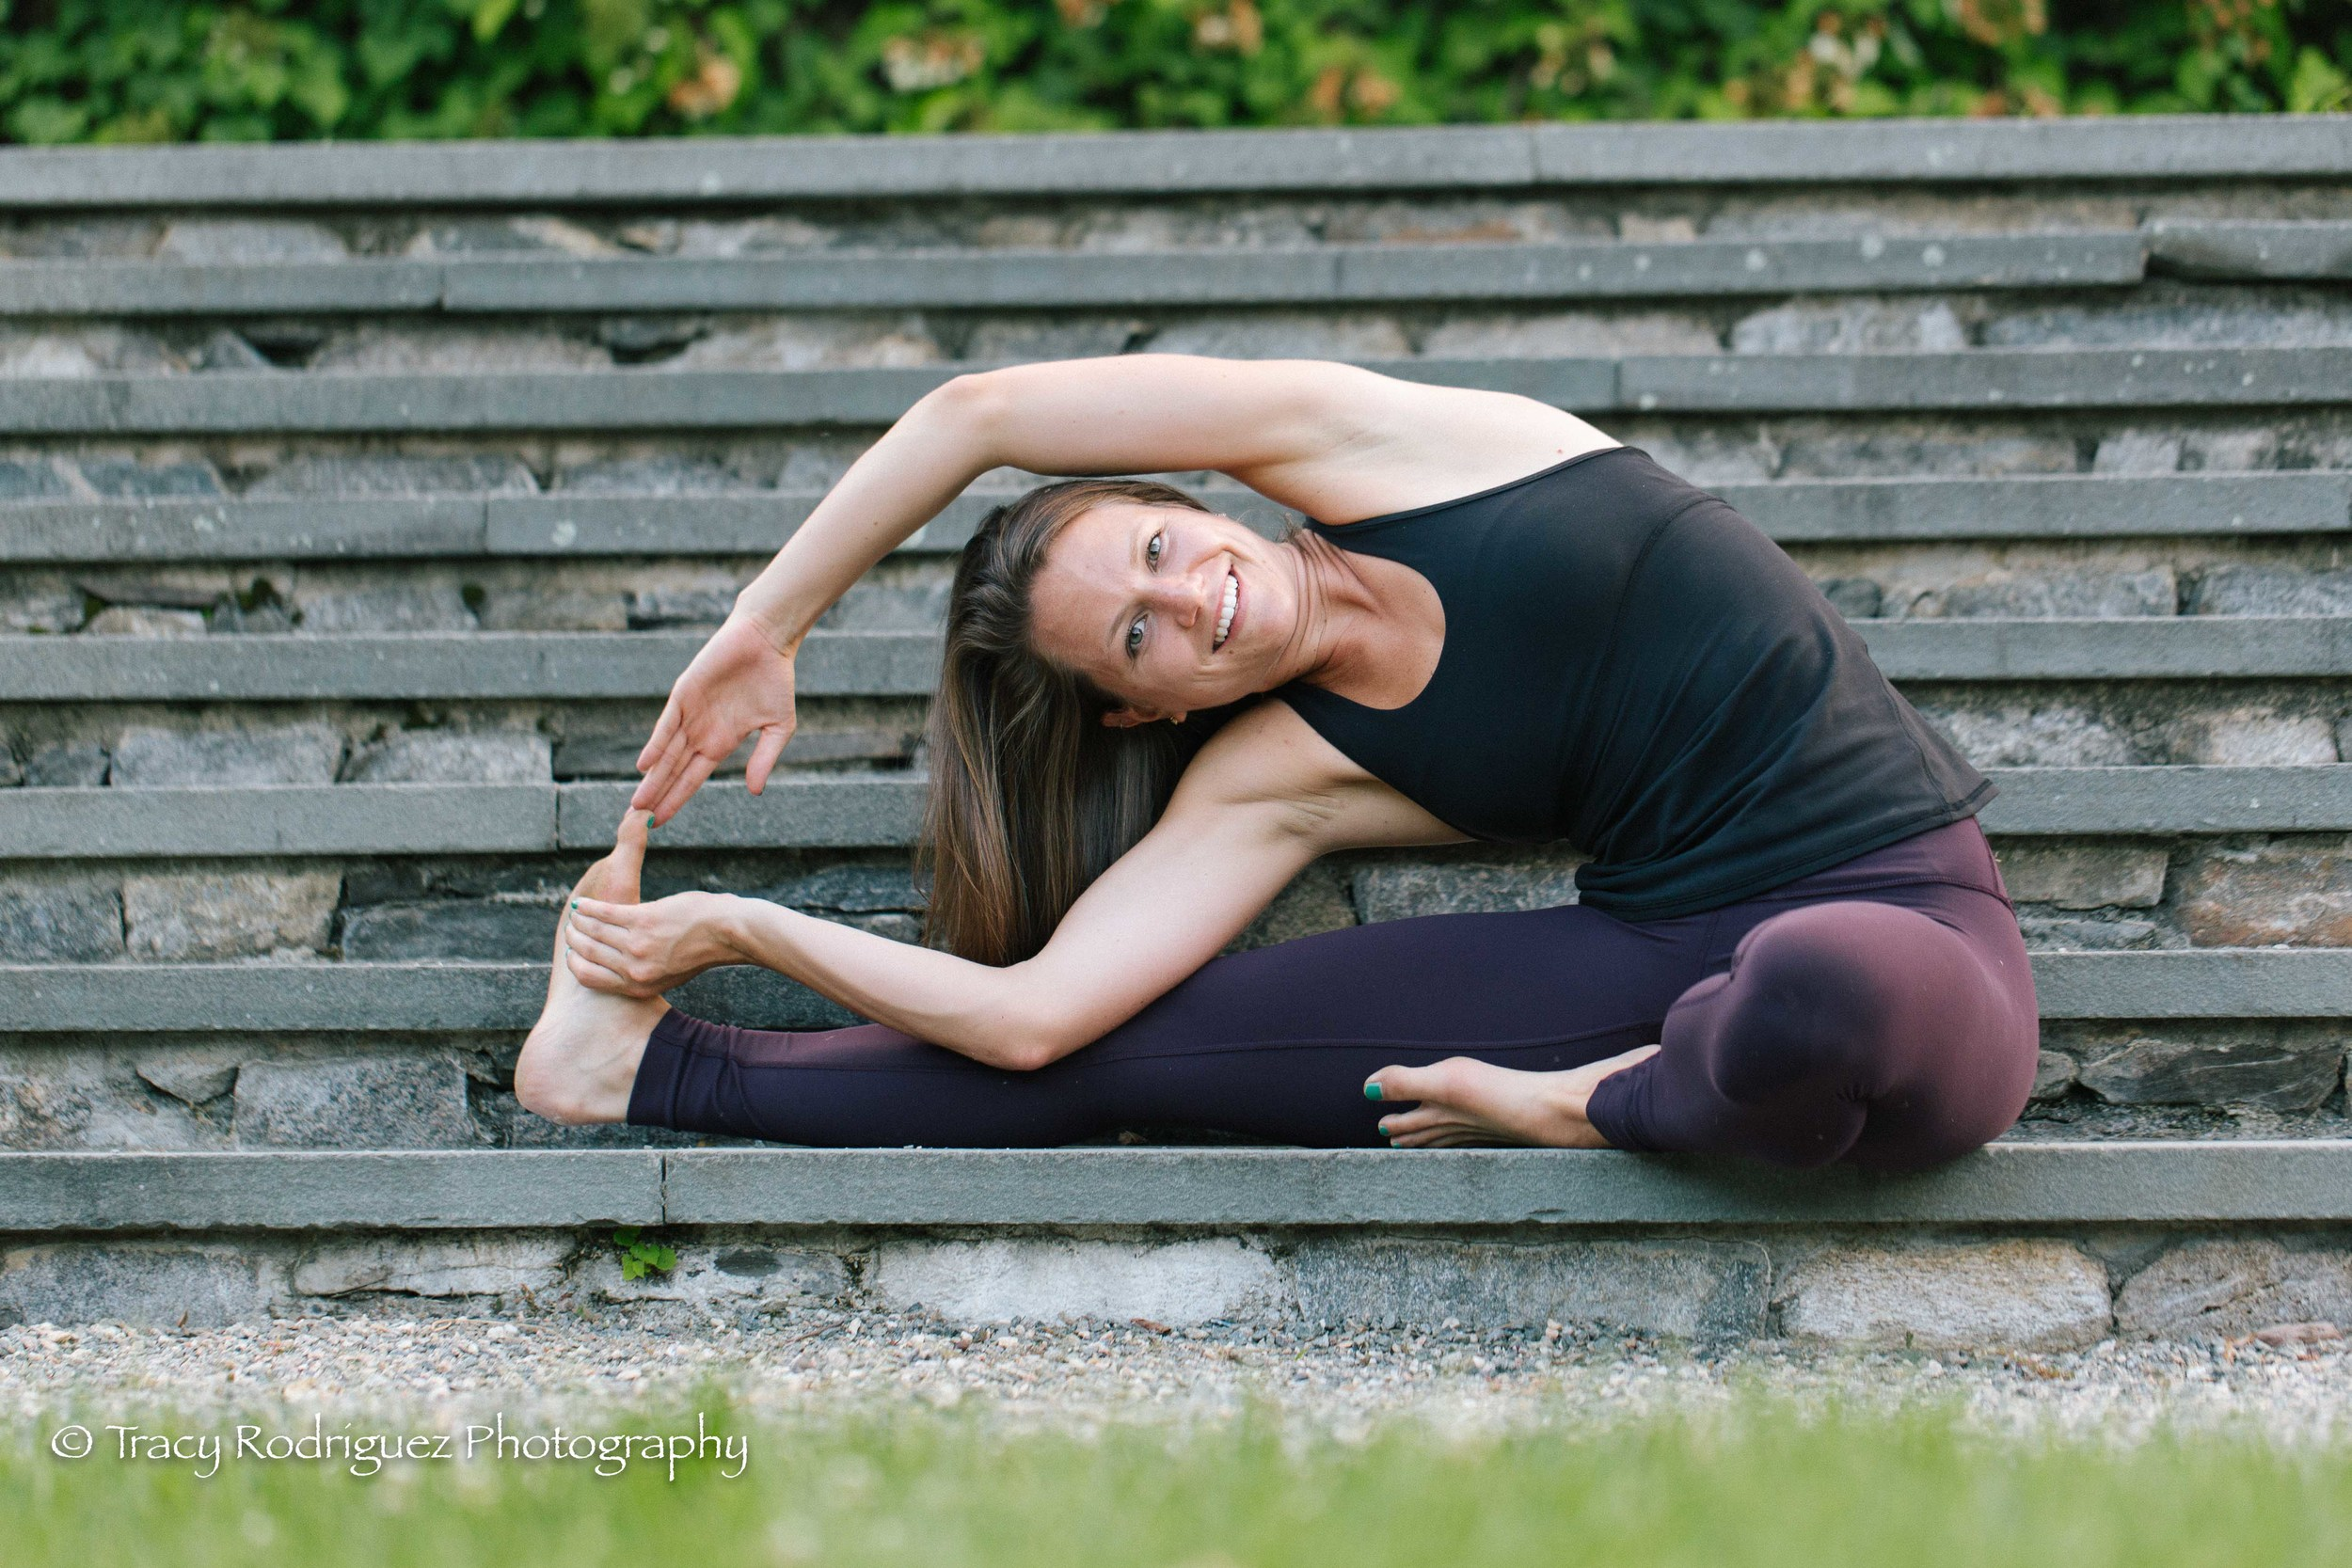 TracyRodriguezPhotography-lowres-79.jpg